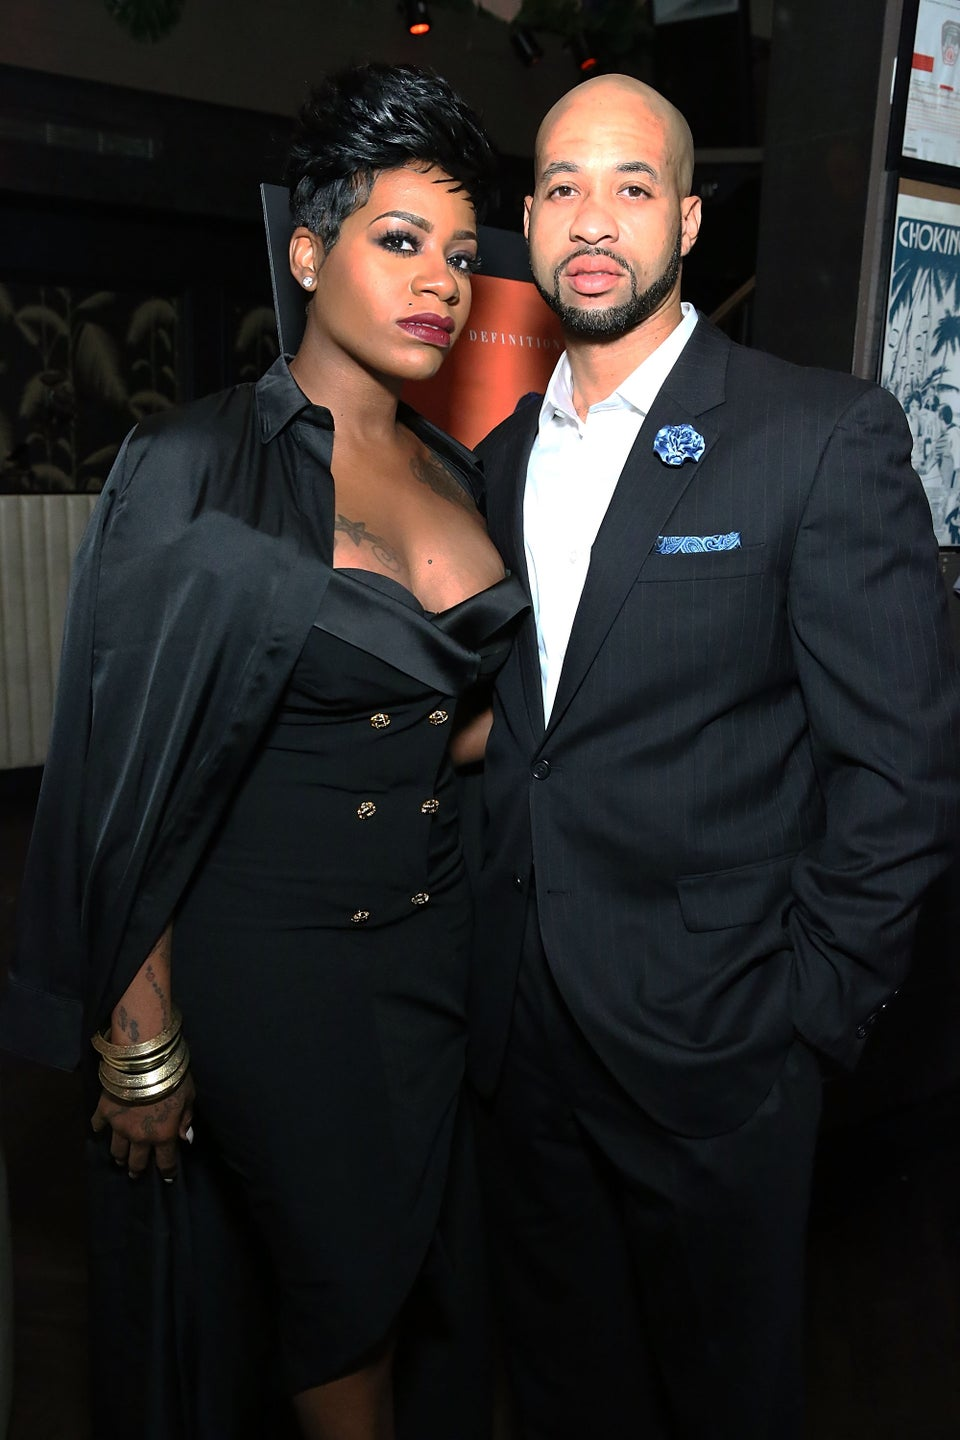 Heels Hurting Your Feet? Fantasia's Hubby Has The Perfect Solution